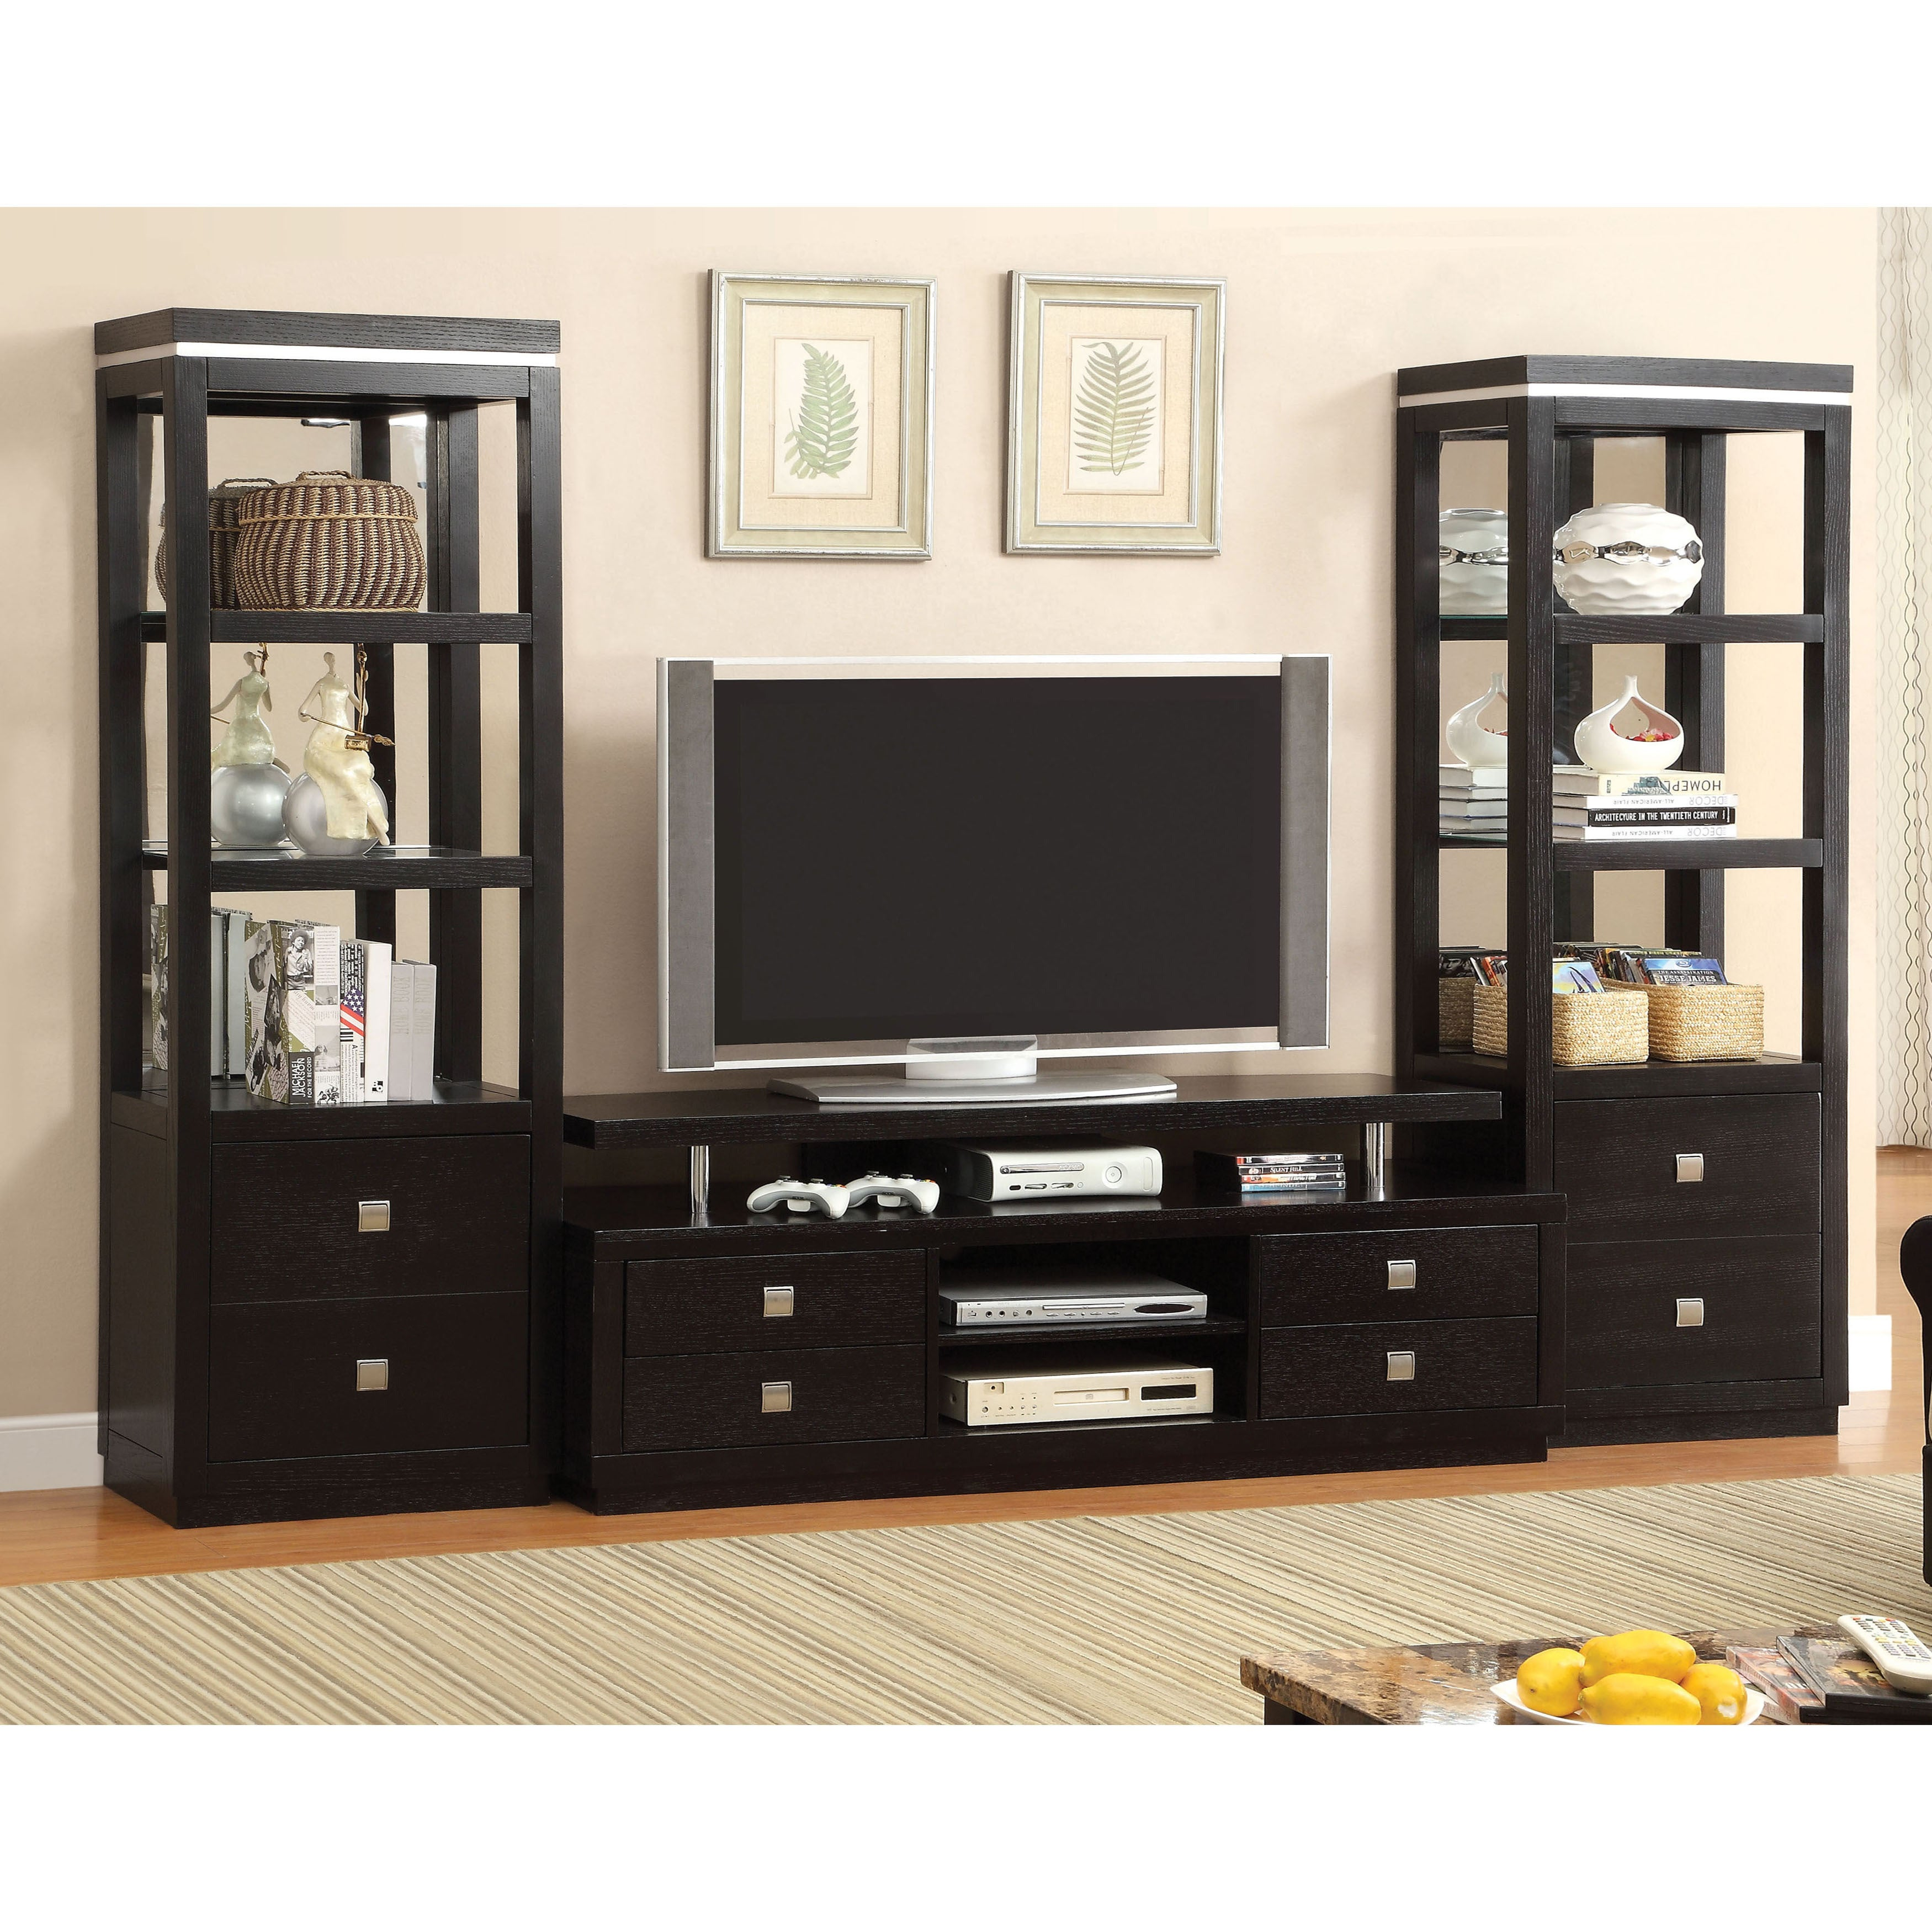 Furniture Of America Bausley Modern Black 3 Piece Entertainment Unit Set On Free Shipping Today 10839998